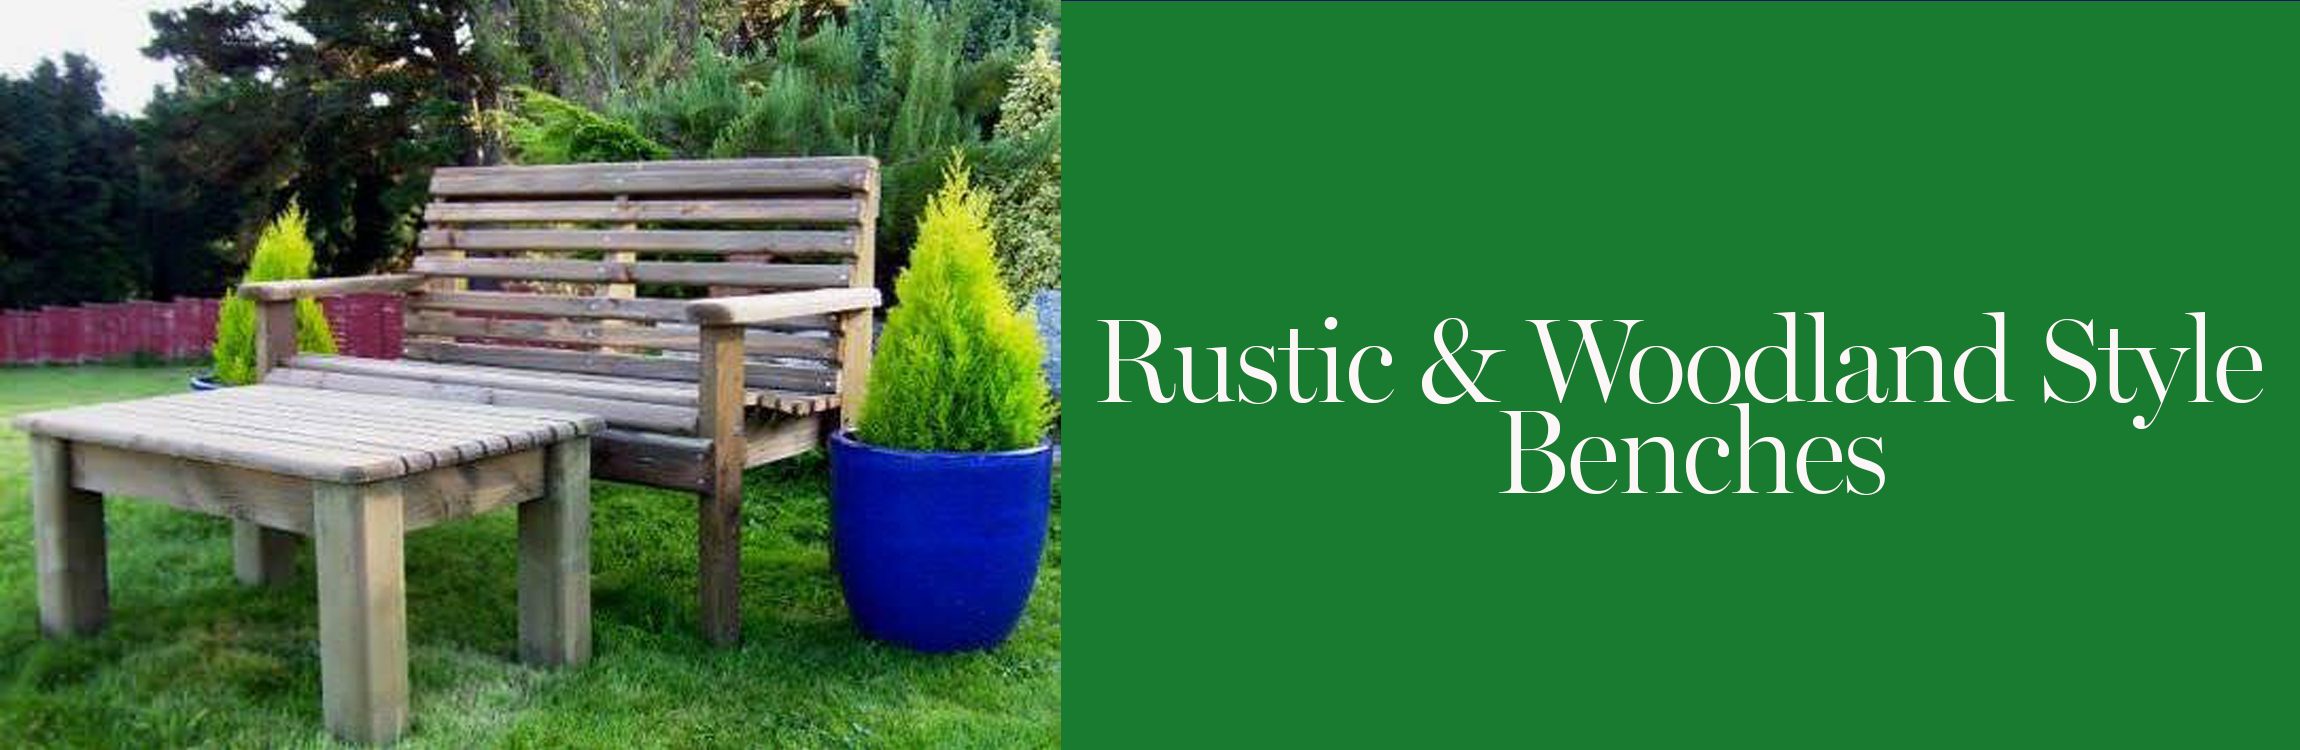 Woodland Style & Rustic Garden Benches